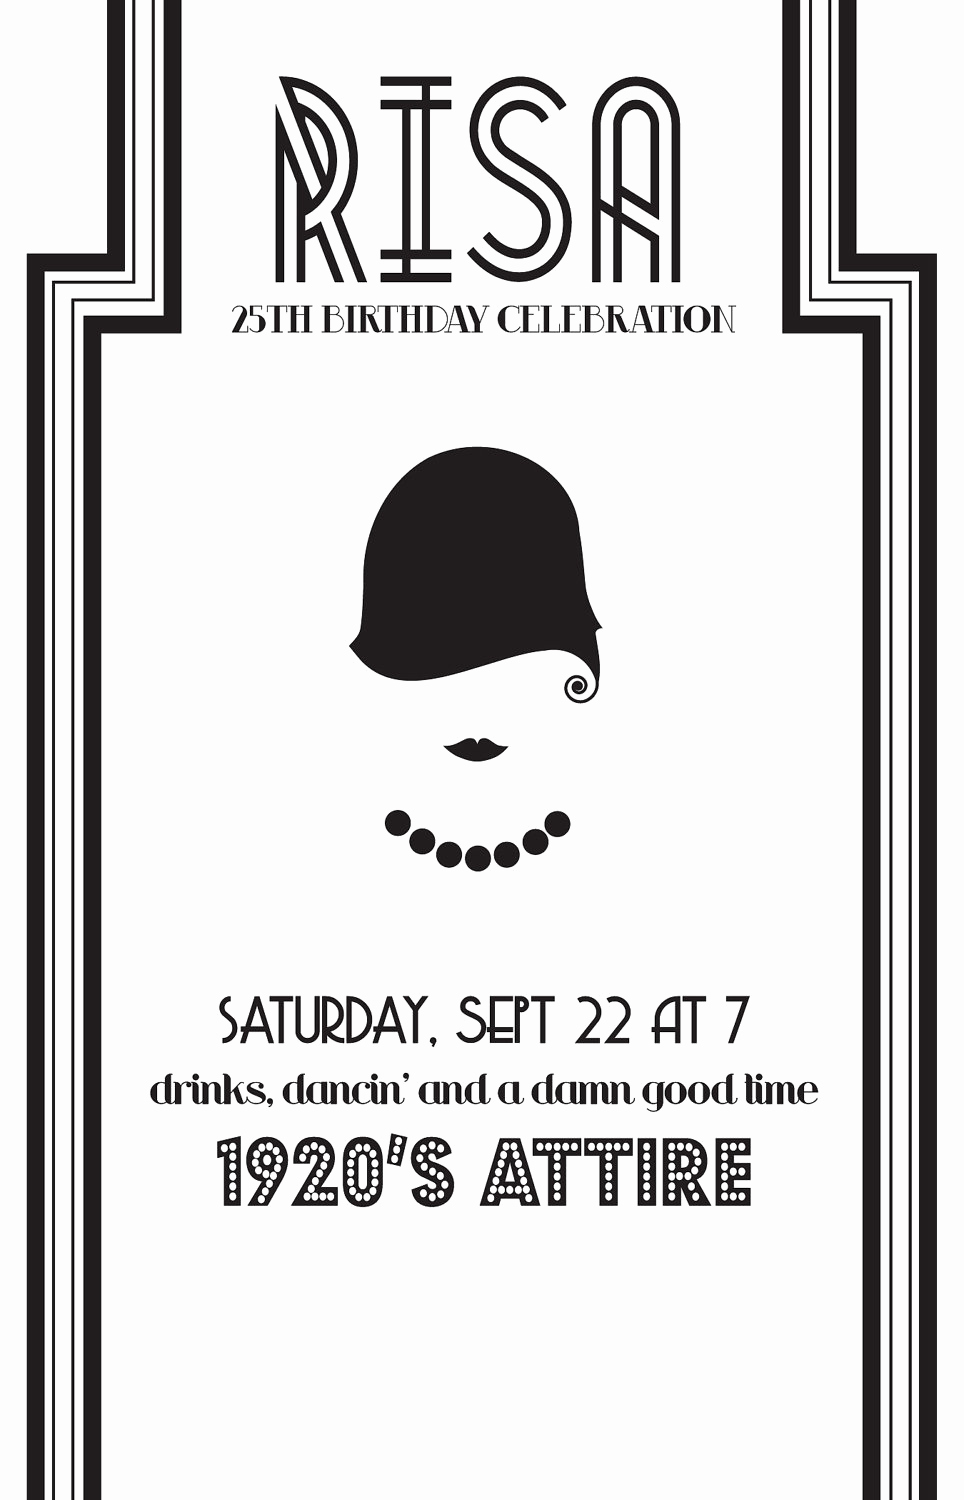 1920s Party Invitation Template Free Luxury 1920s Party Invite